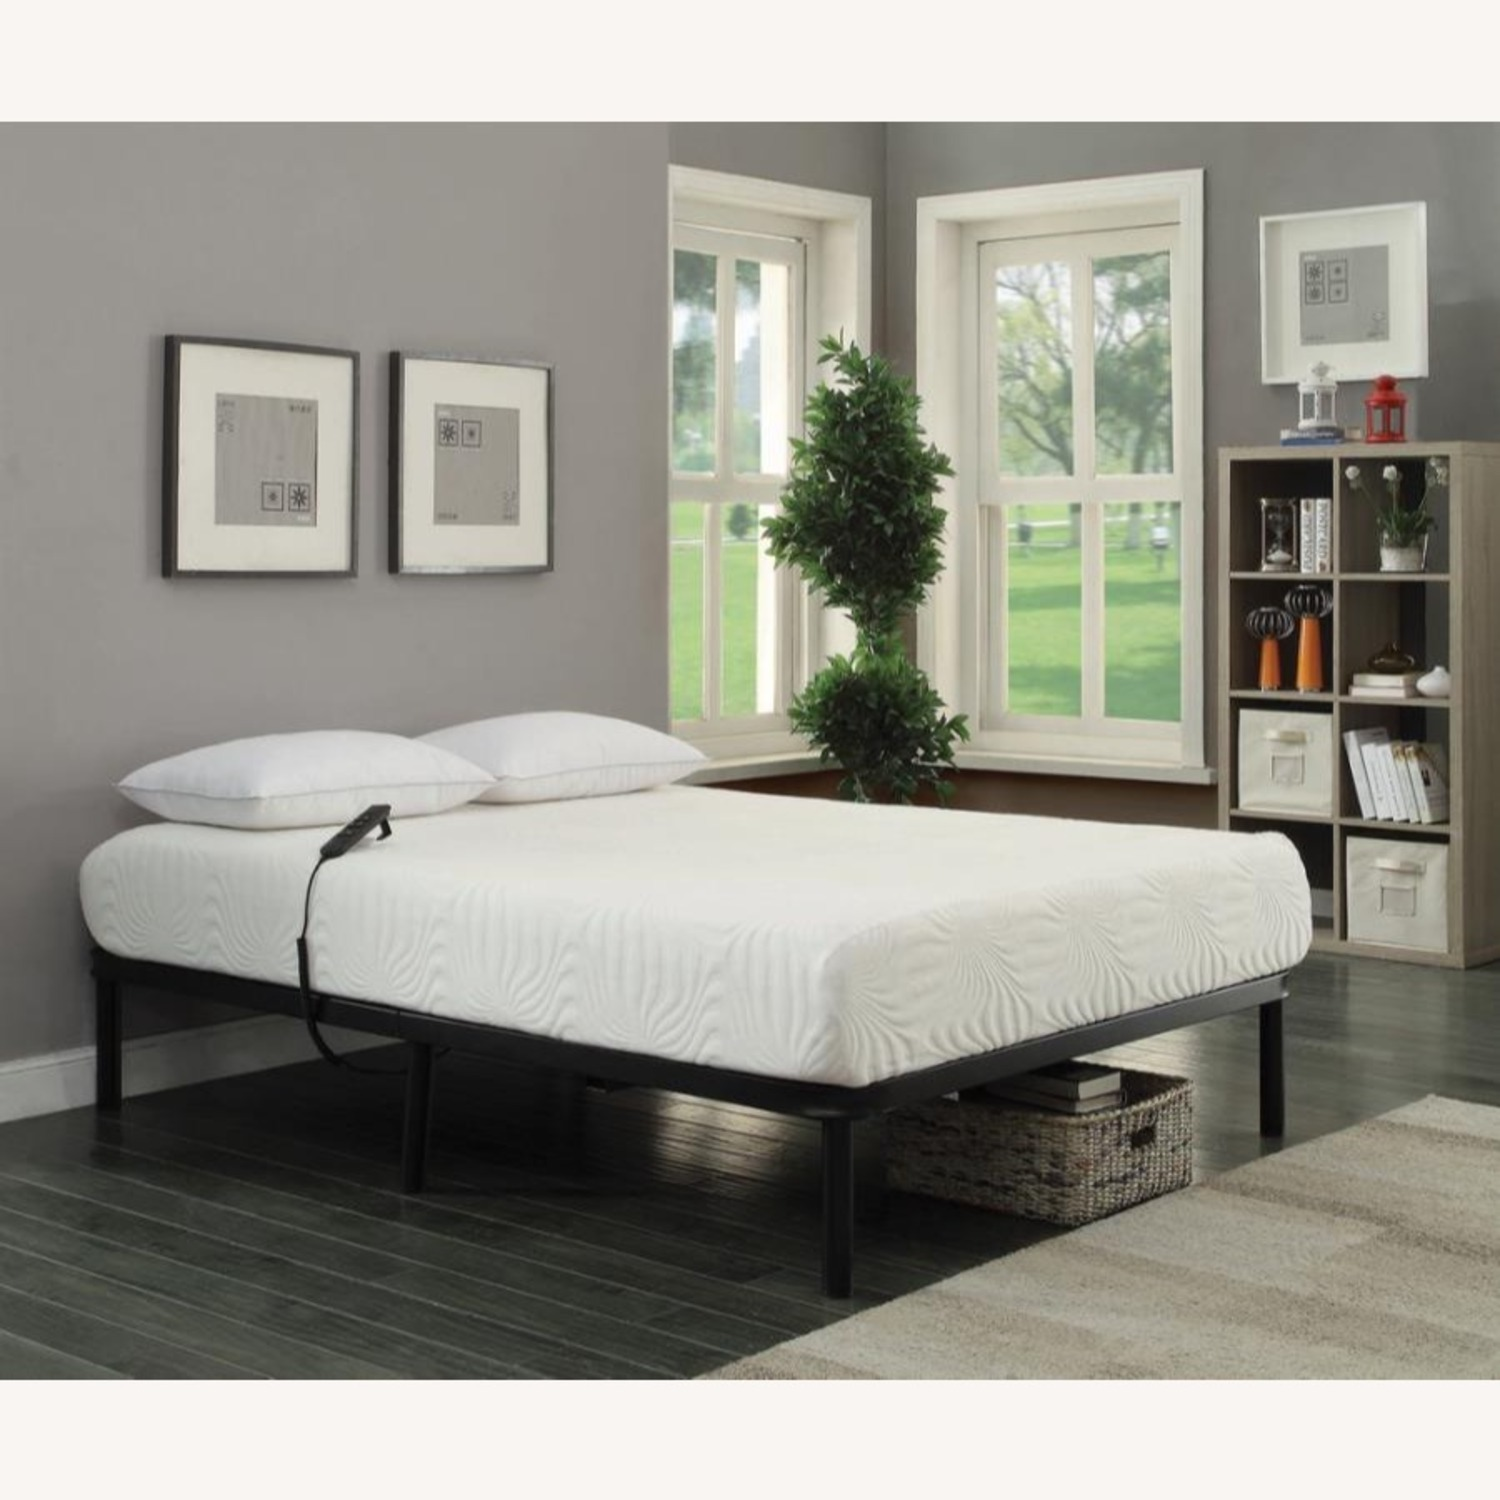 Adjustable Twin XL Bed Base In Black Finish - image-1